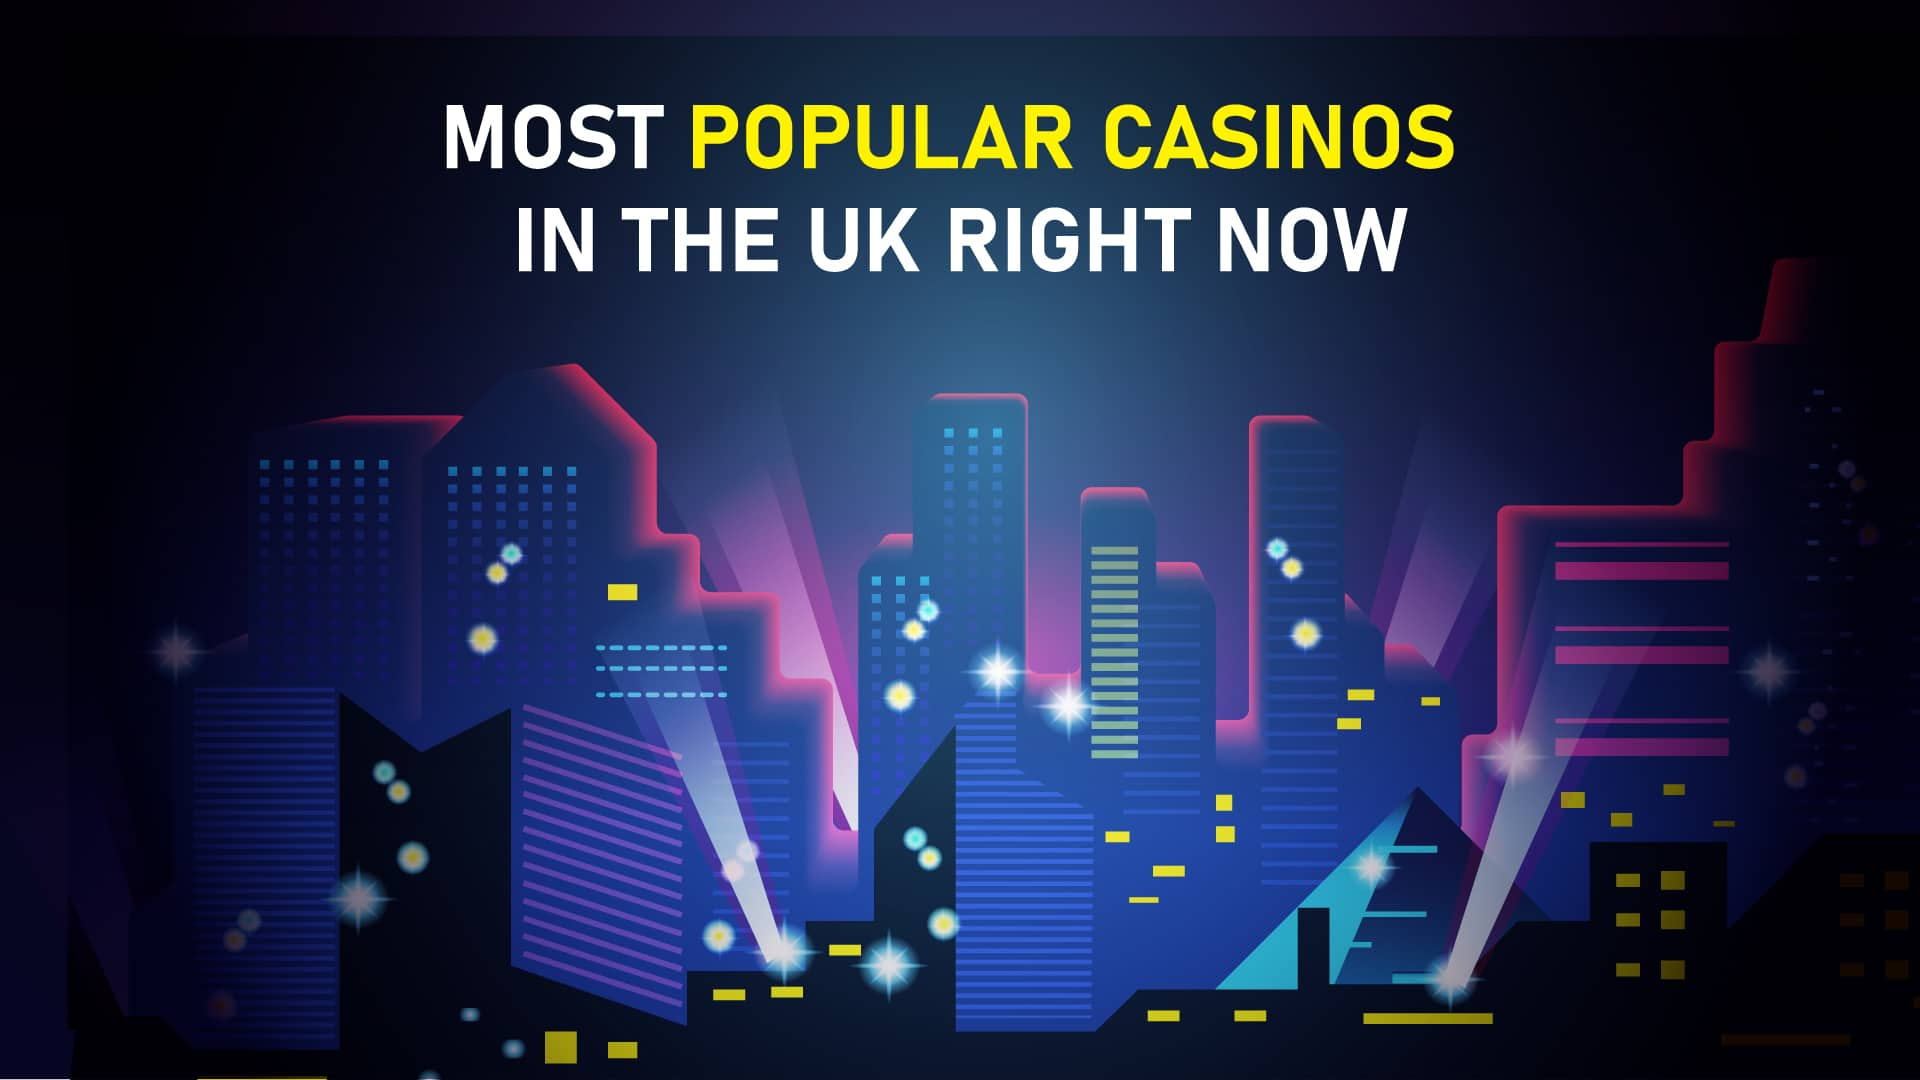 Most popular casinos in the UK right now